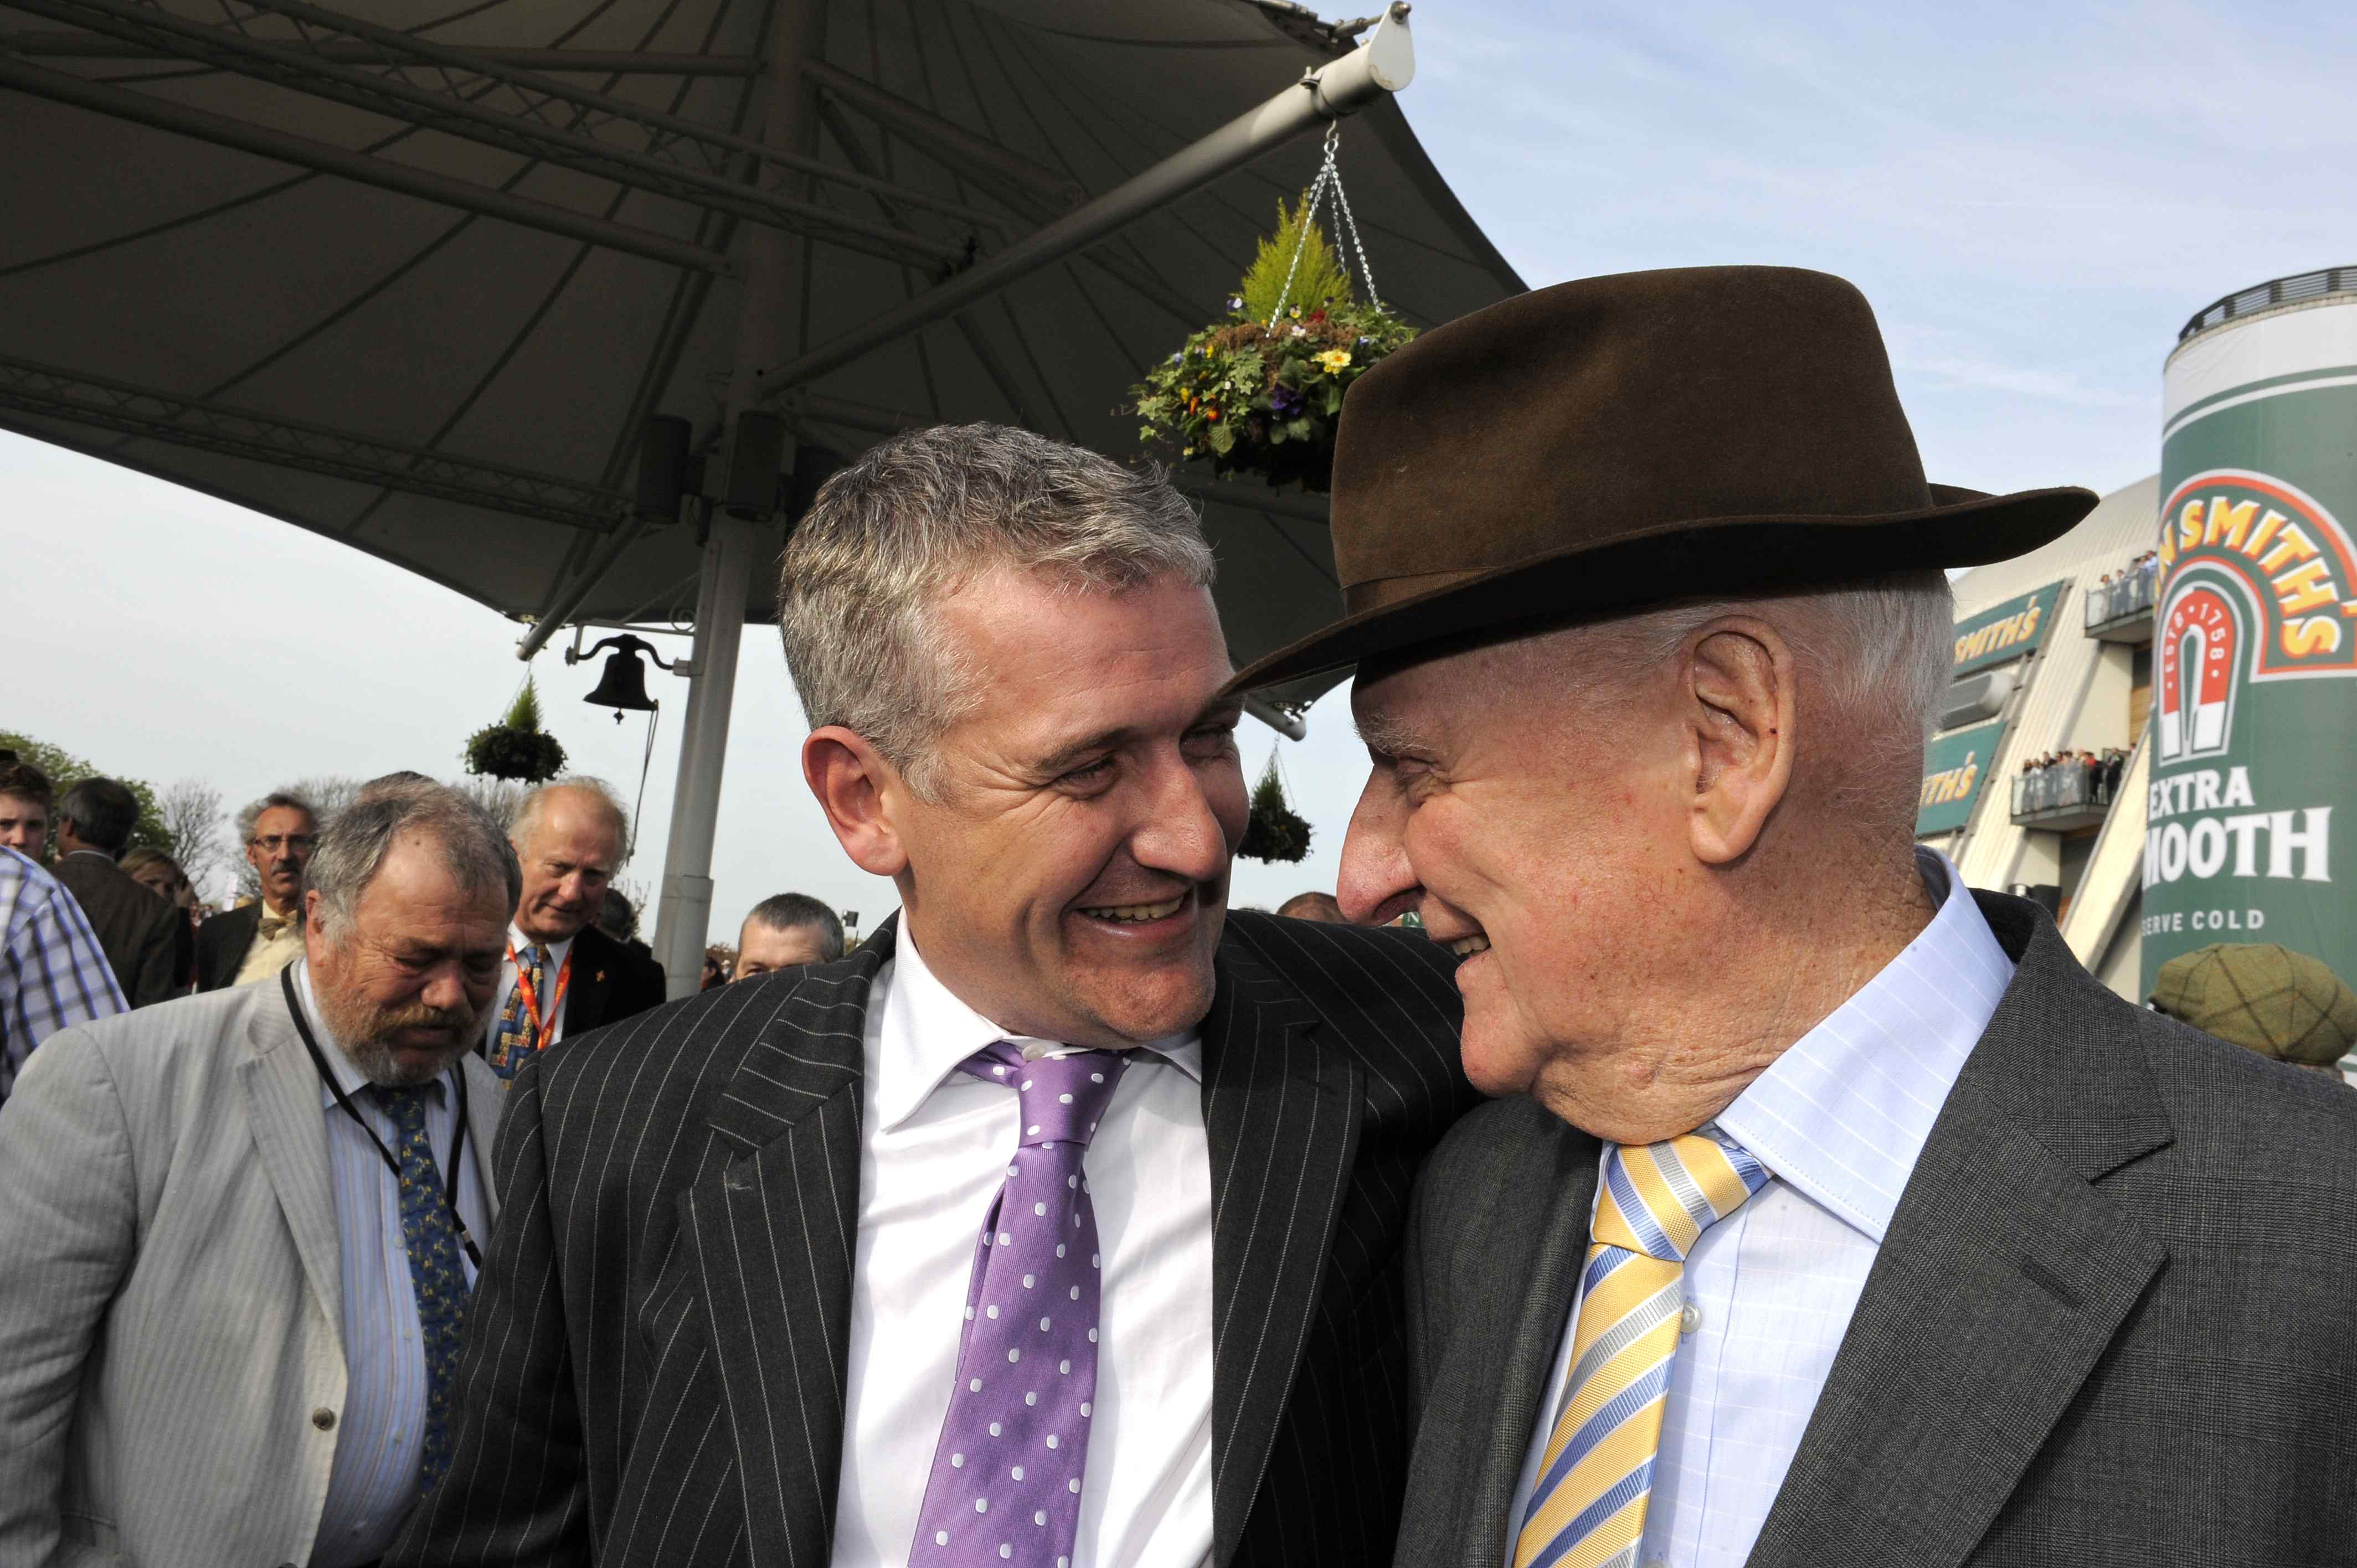 Kruzhlinin was one of the horses Paul and Clare Rooney removed from the McCain stable